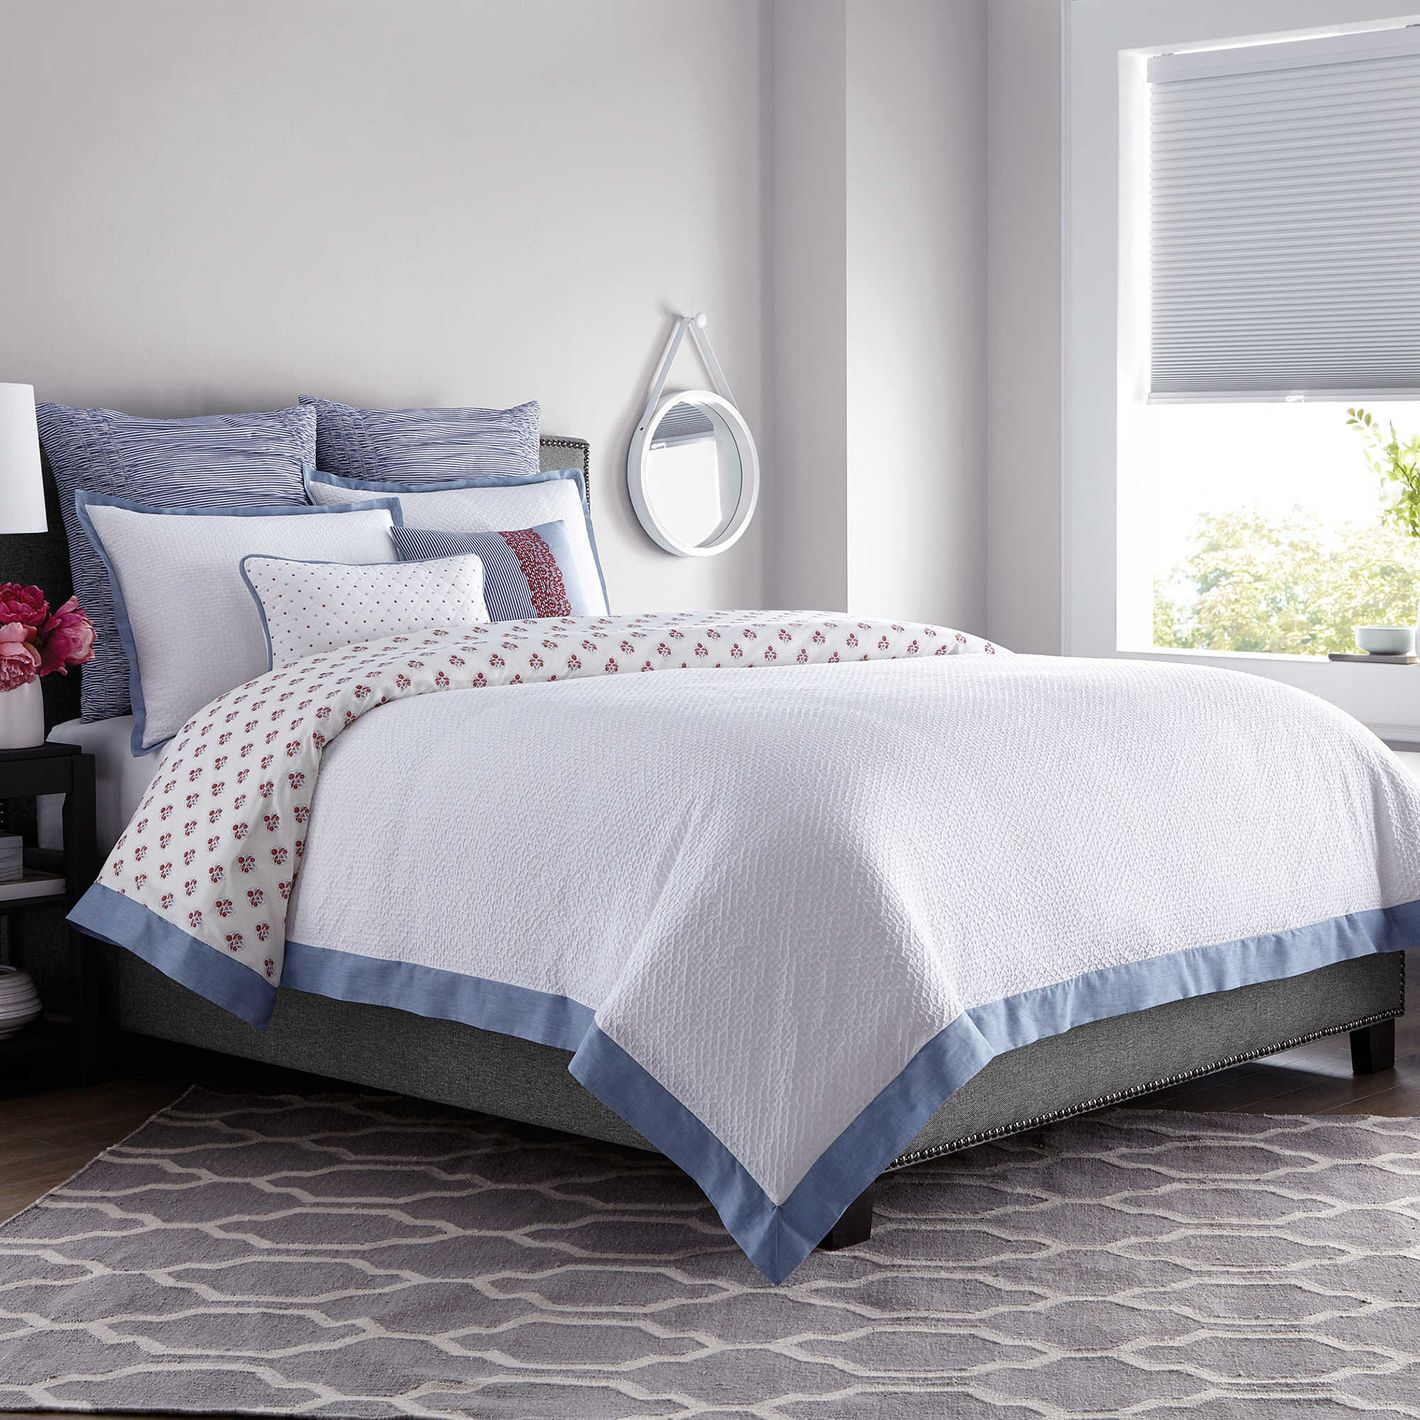 Real Simple French Riviera Duvet Cover in White